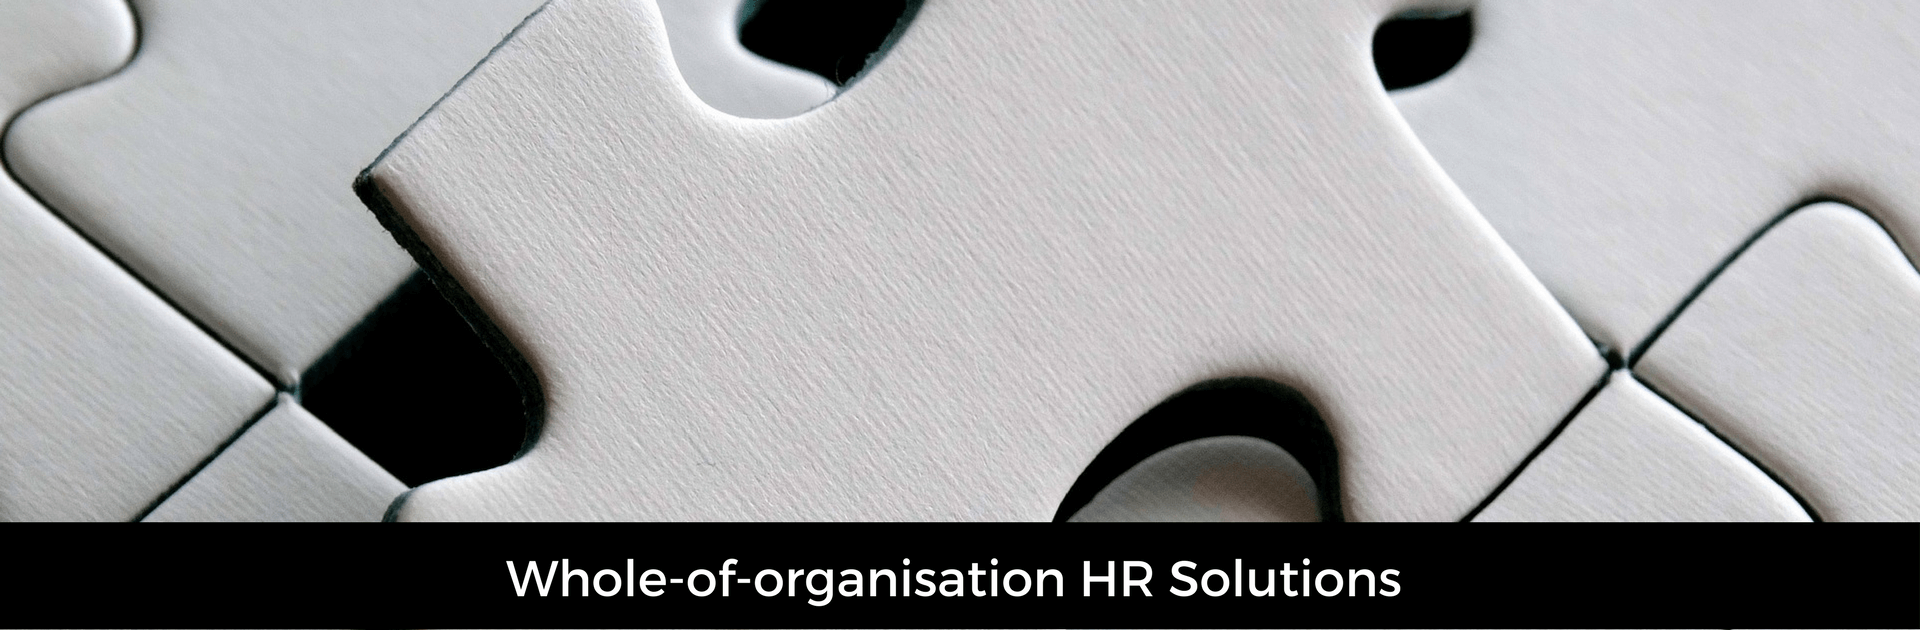 Picture captioned whole of organisation HR solutions. Background image of a jigsaw